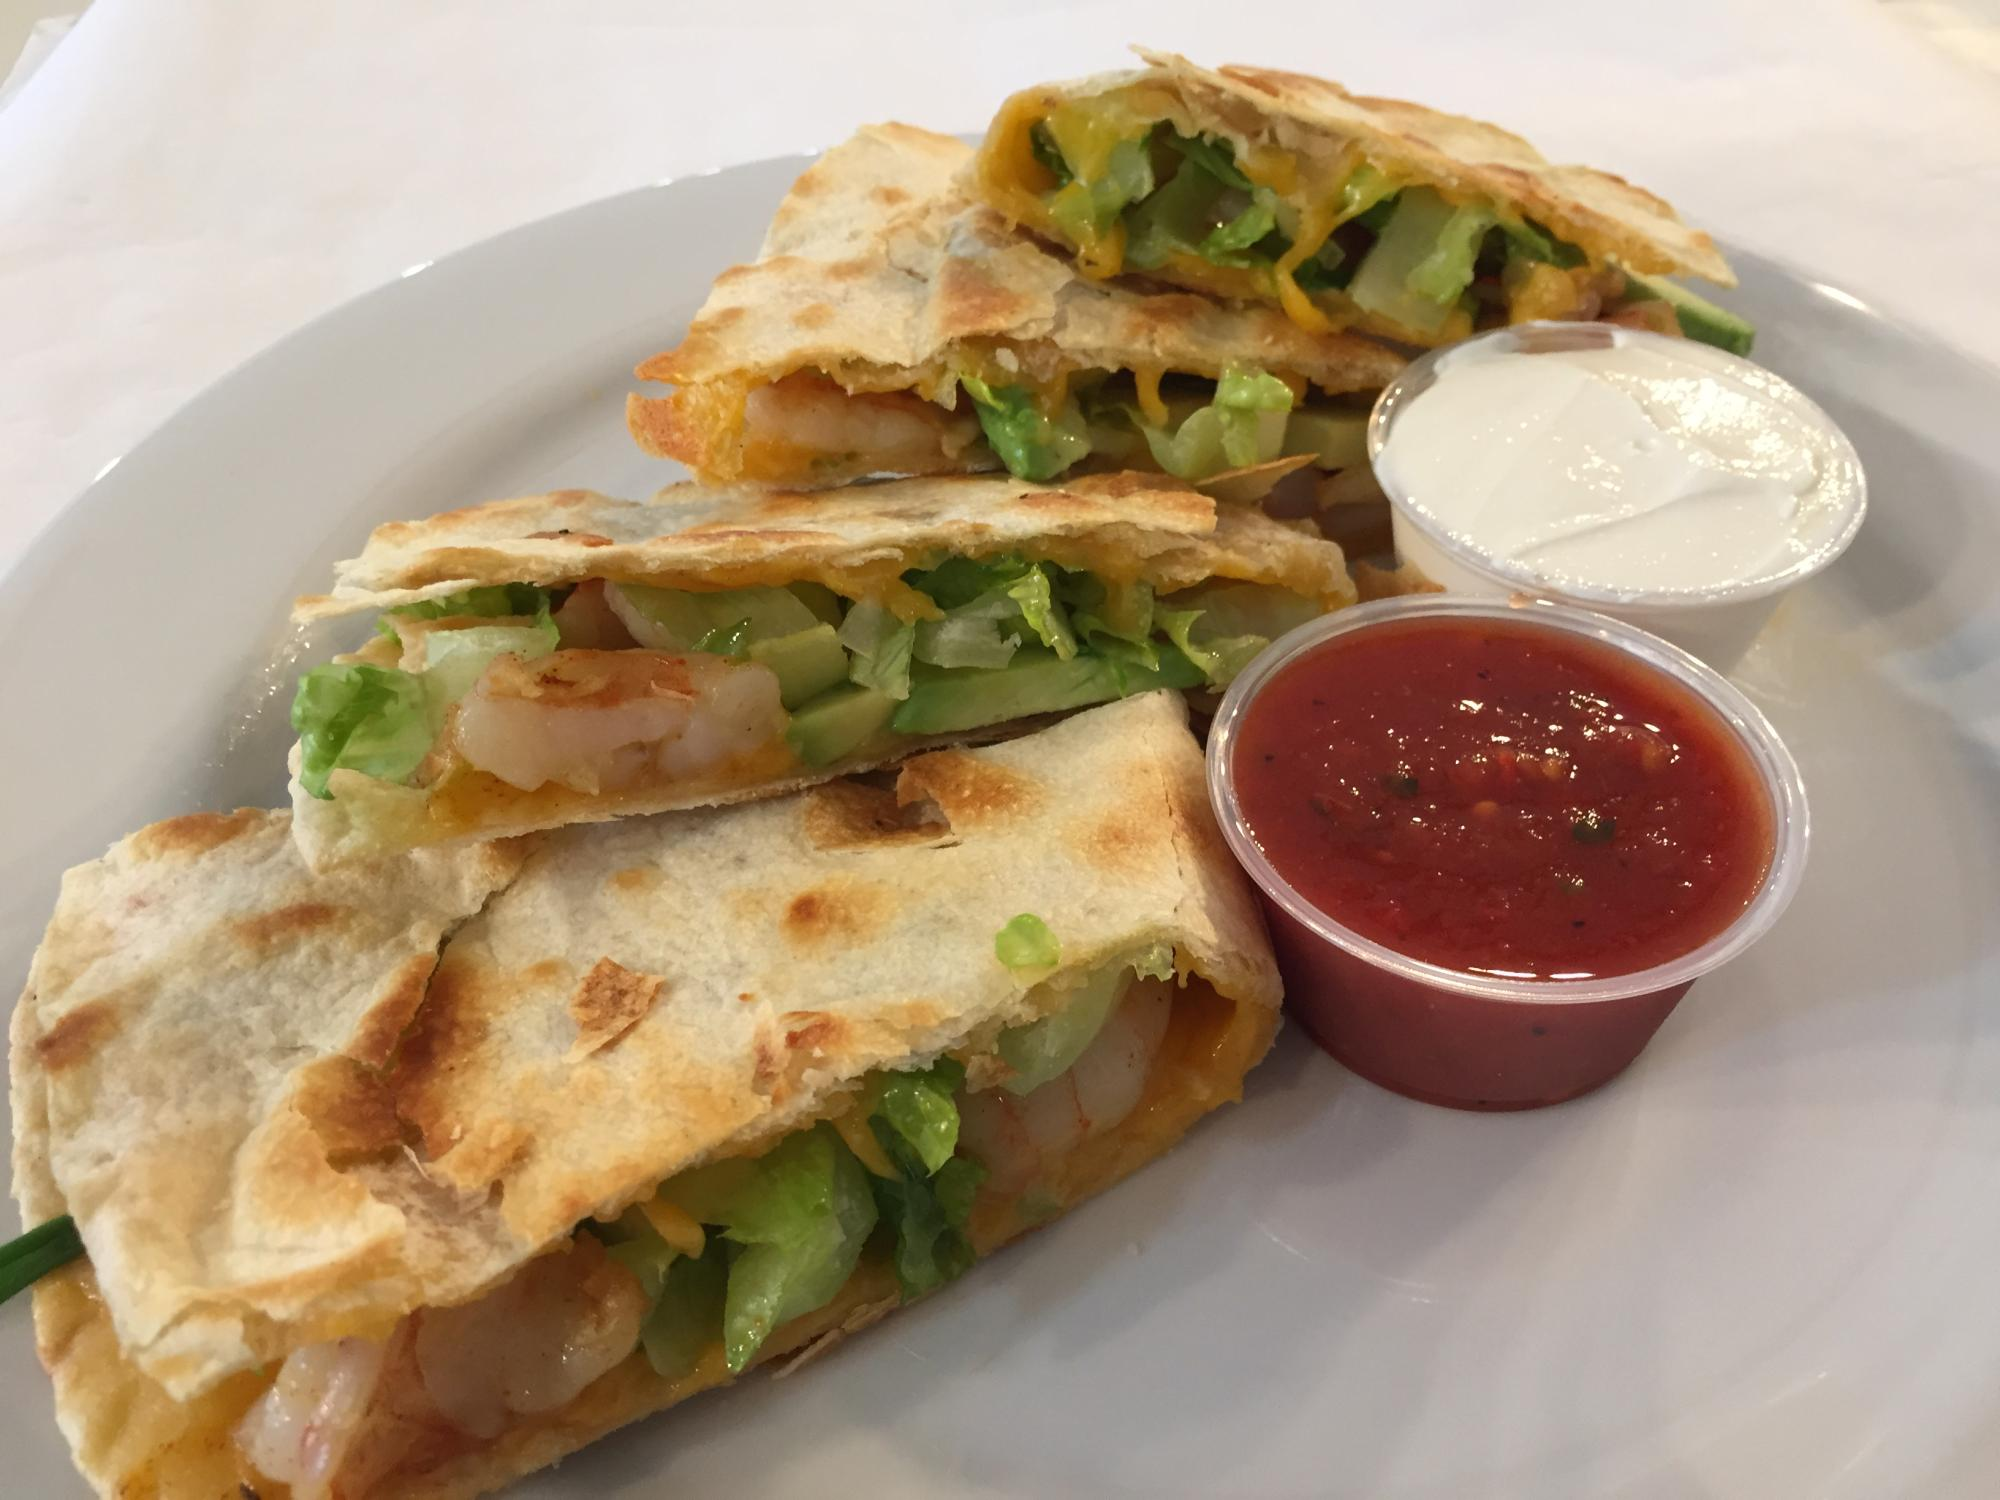 Cajun_Shrimp_Quesadilla.JPG